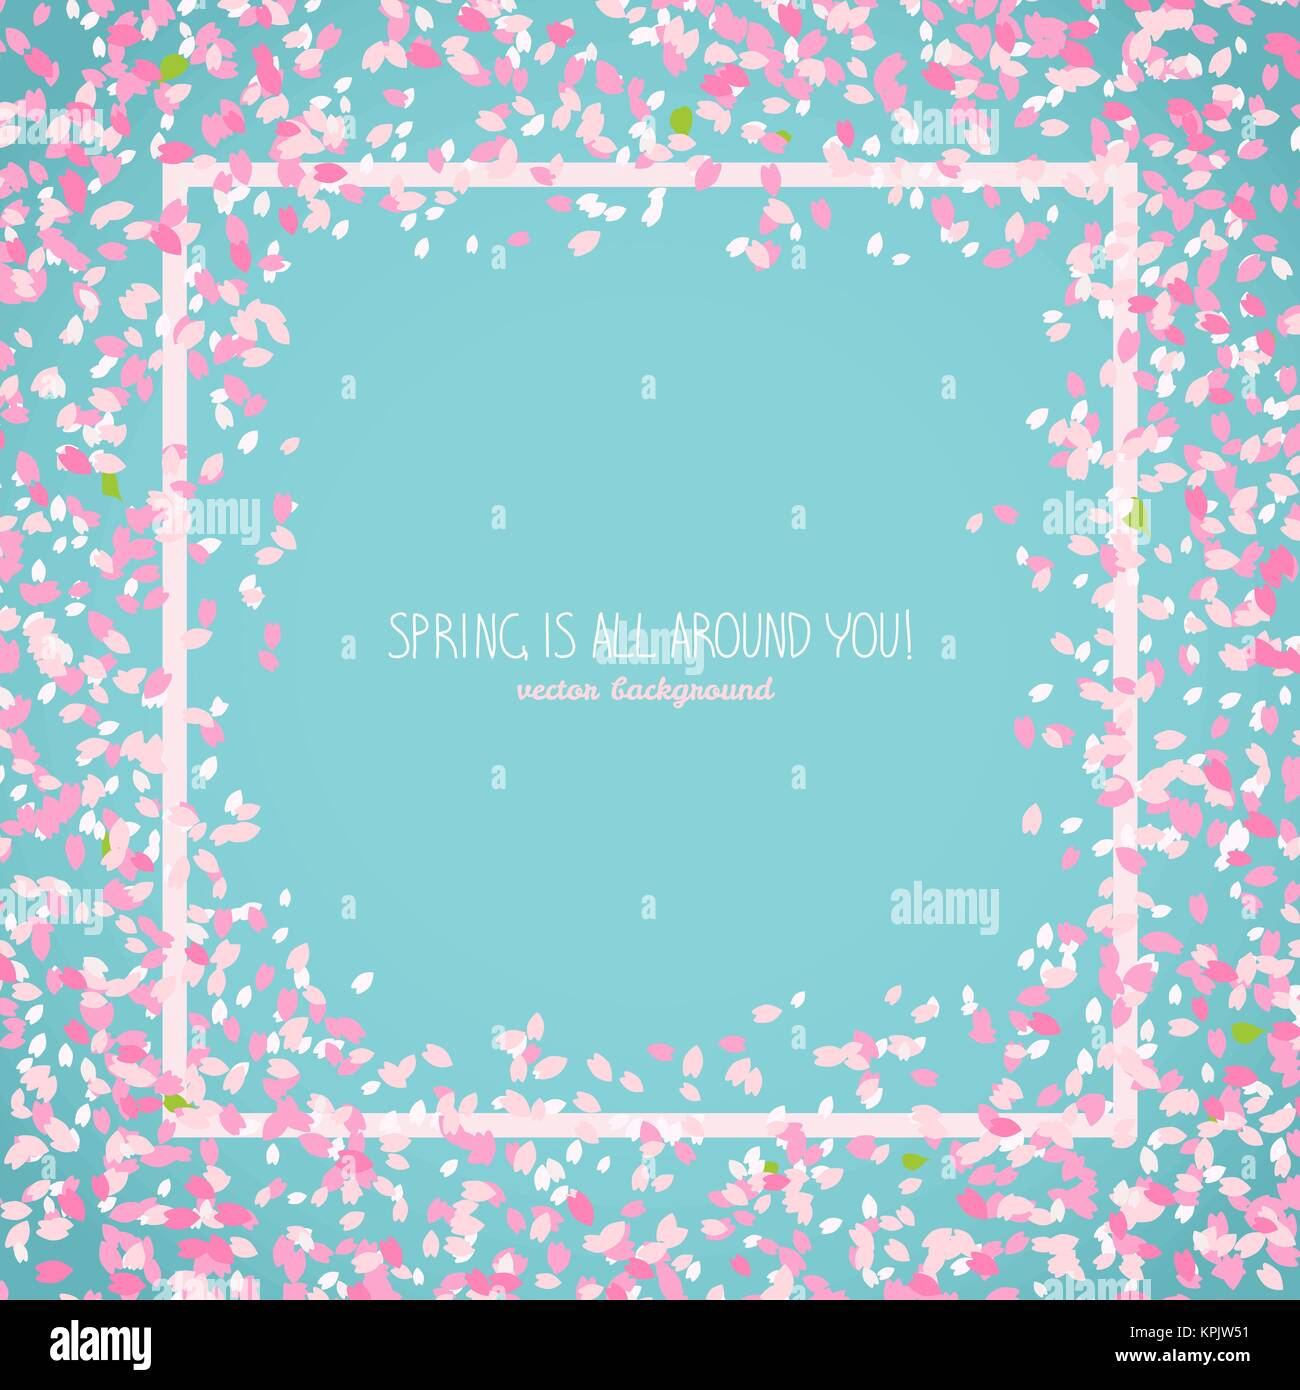 Spring Is All Around You Japanese Sakura Flyer Romantic Poster With Flowers Simple Text Frame Border Floral Scatter Hanami Culture